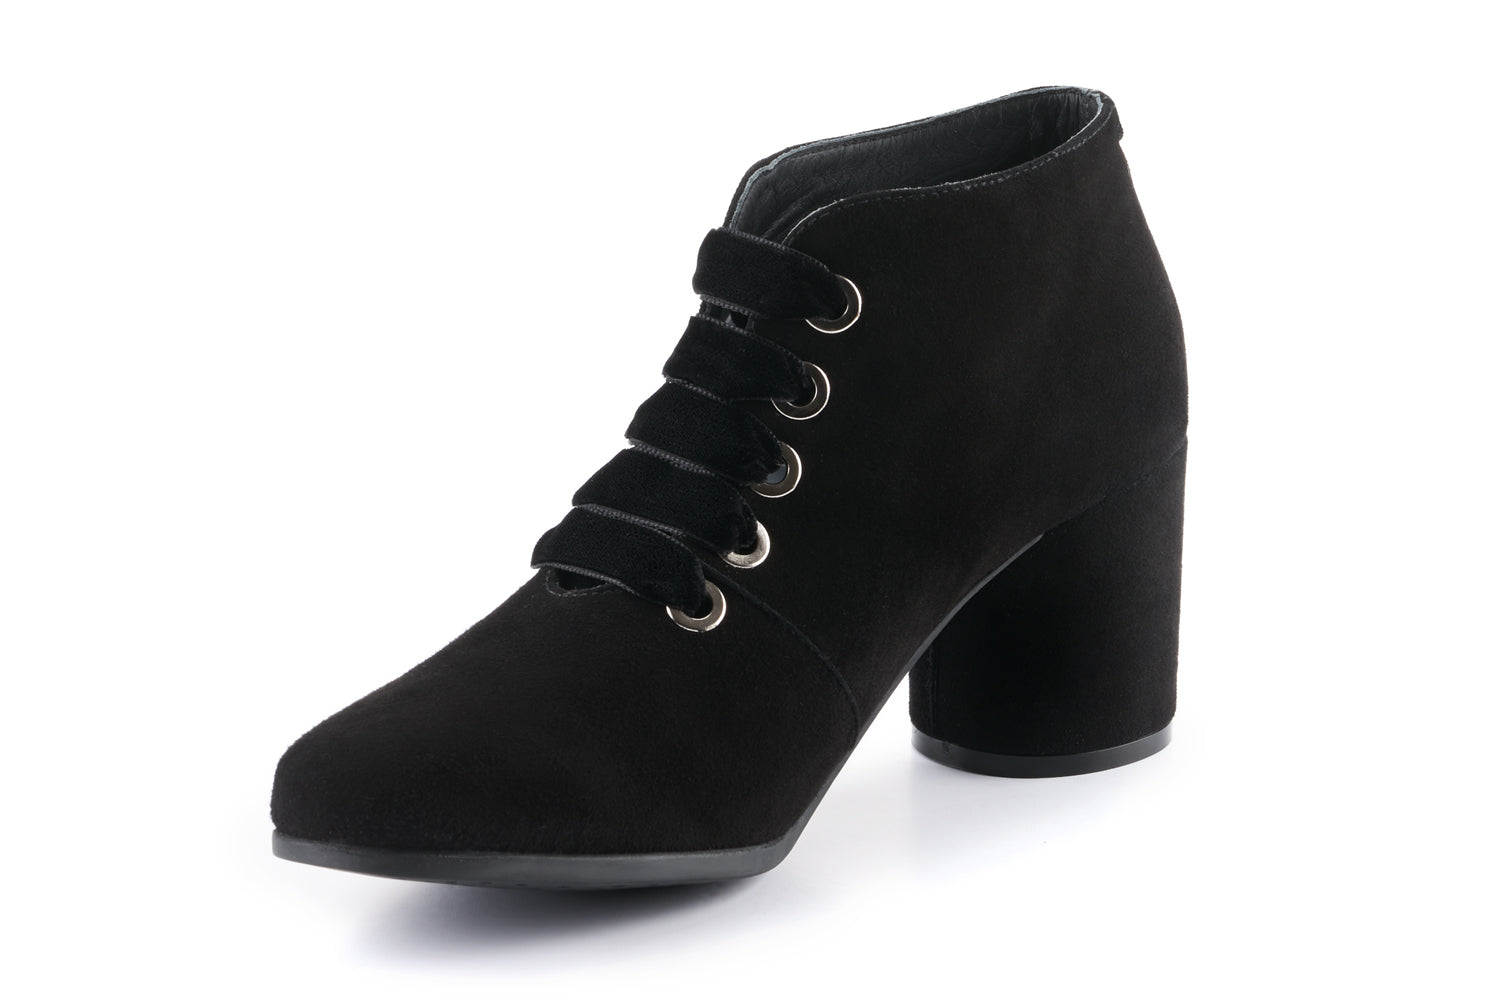 Lexi Suede Ankle Boot - Black